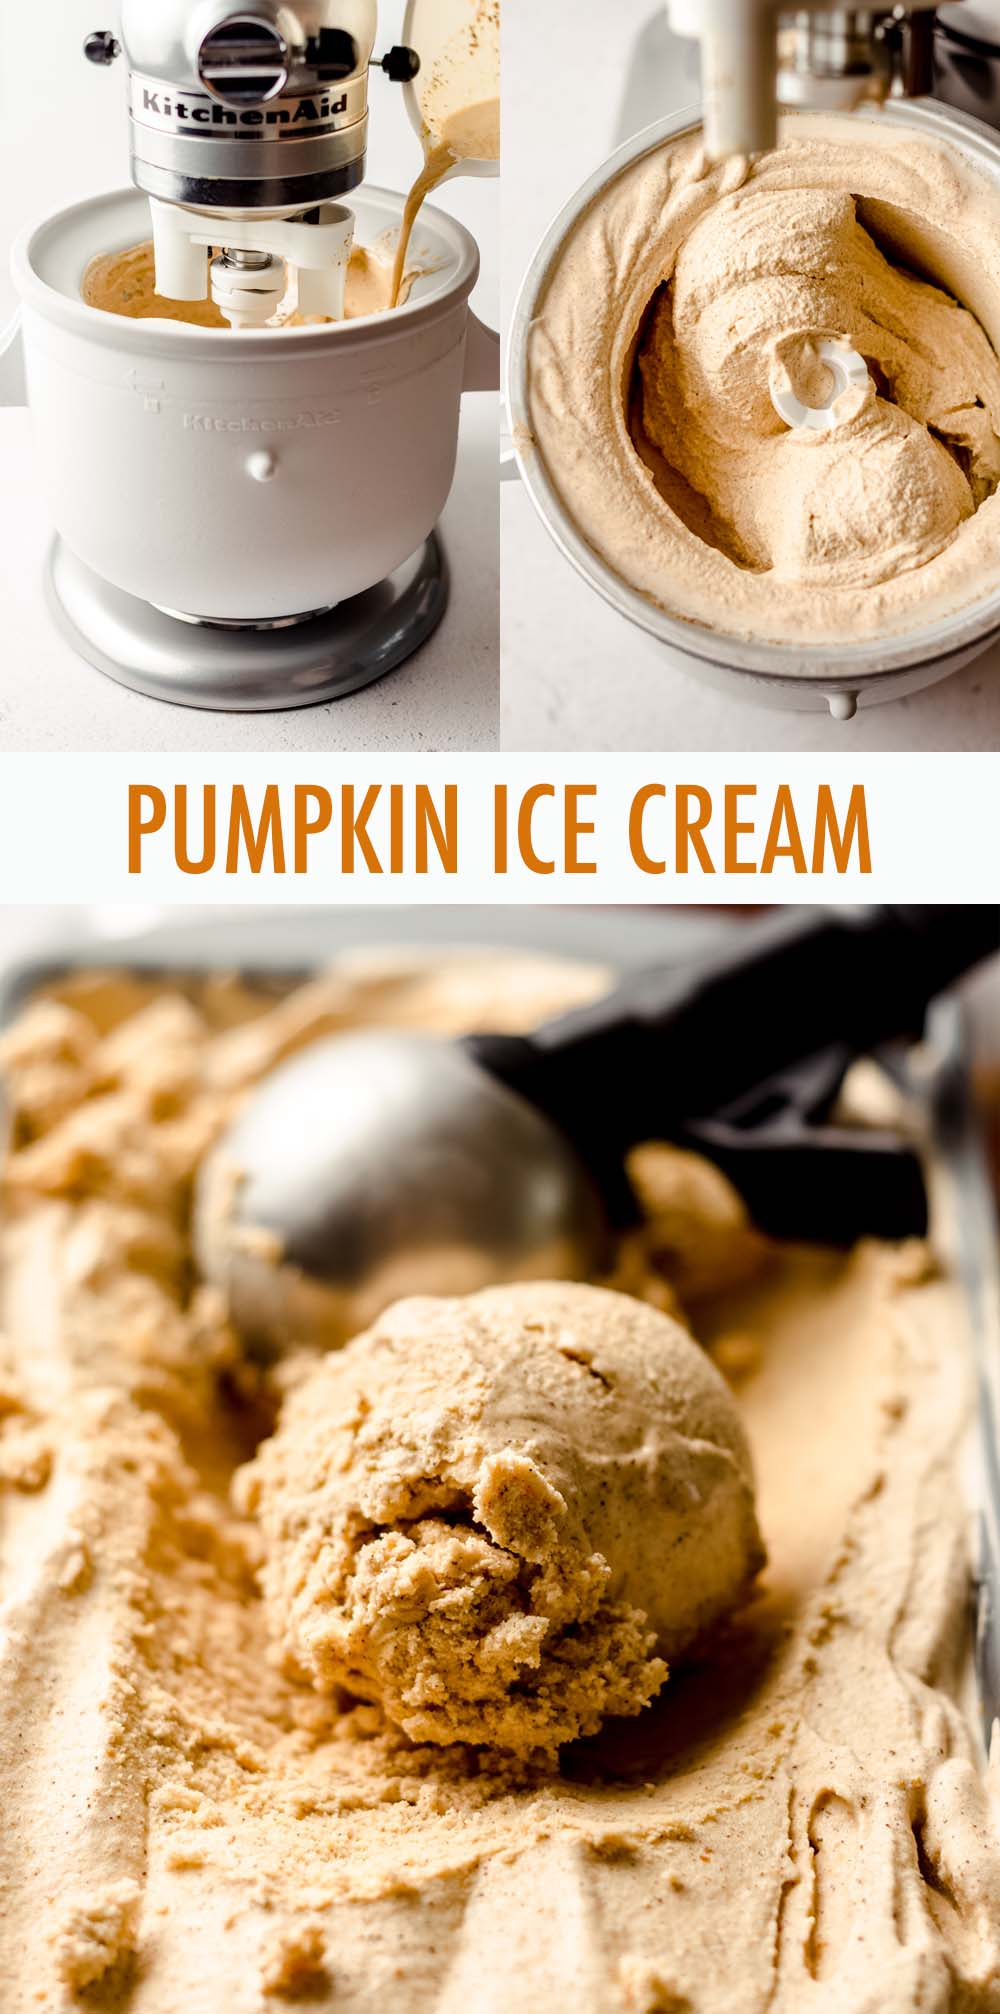 Smooth and creamy homemade ice cream made with real pumpkin, sweetened with brown sugar, and spiced with cinnamon and pumpkin pie spice. Get your pumpkin ice cream fix any time of the year with this simple recipe!